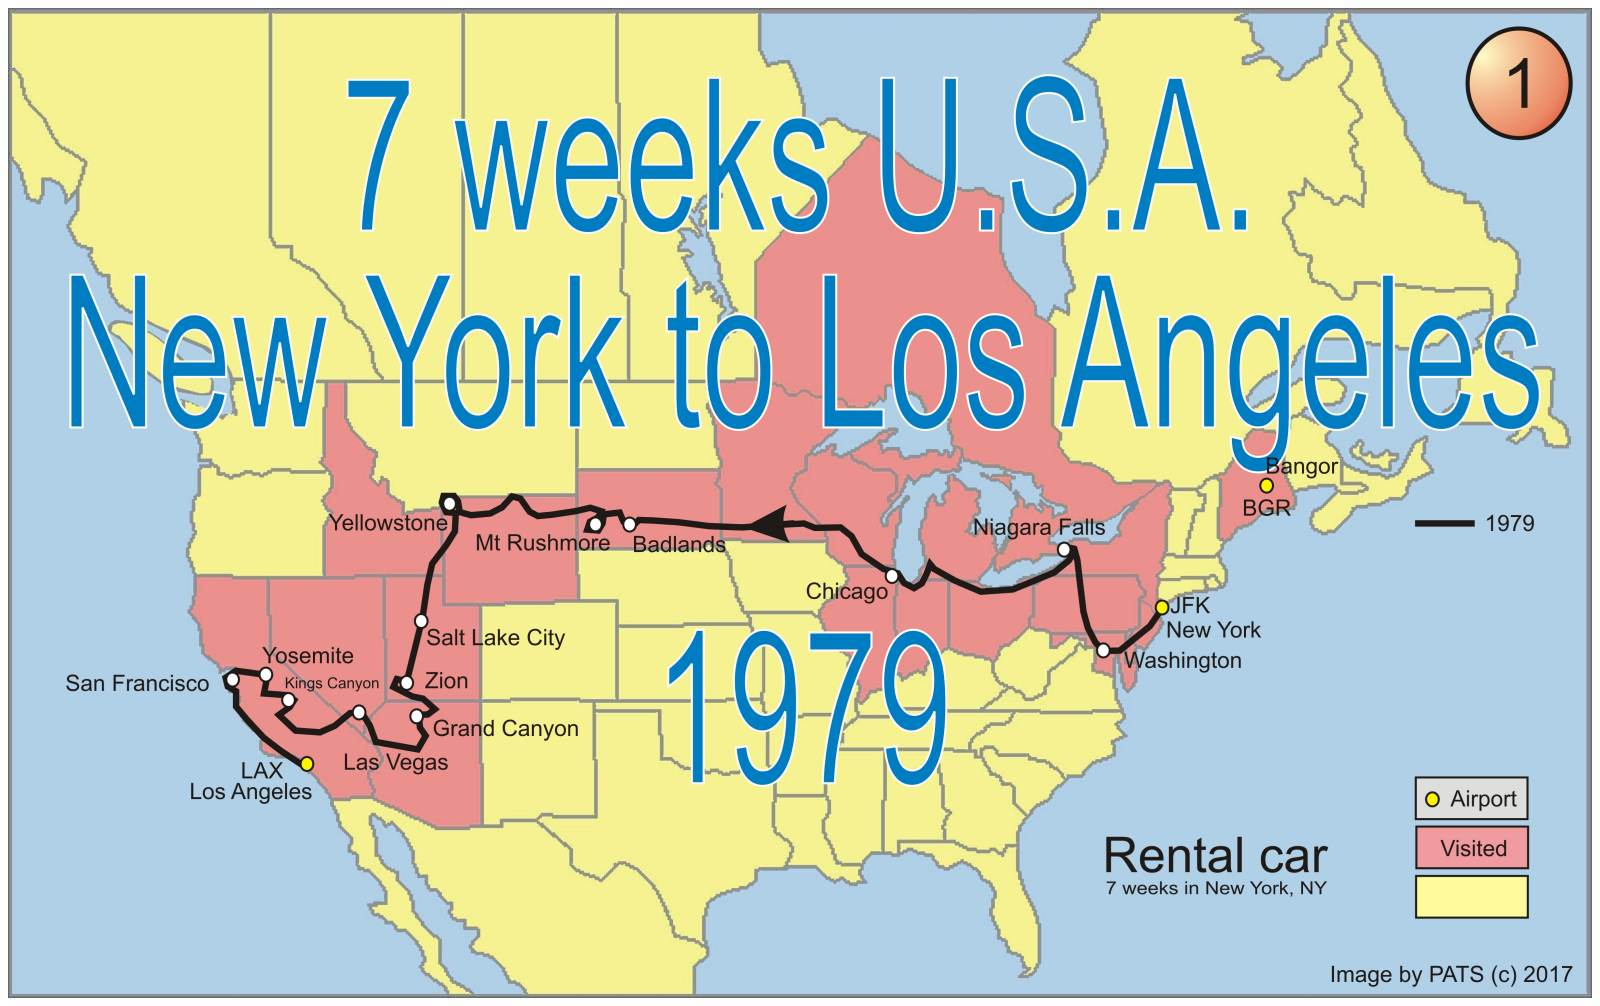 1979 - 7 weeks - New York to Los Angeles